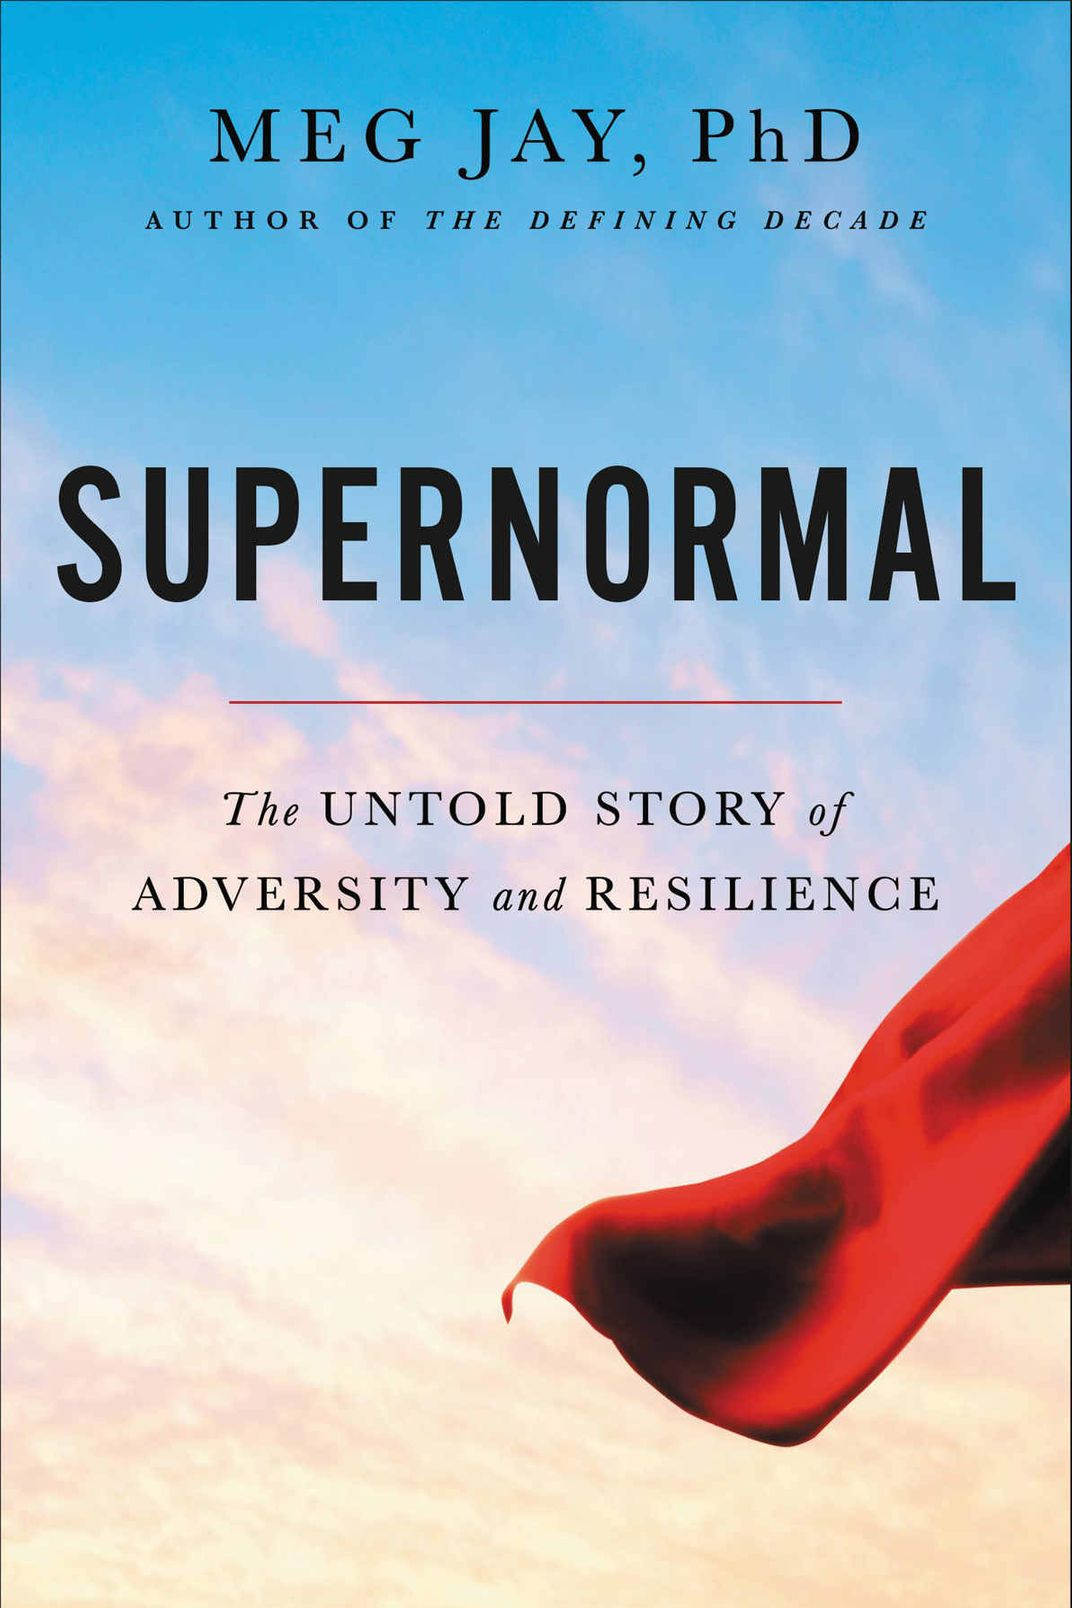 Supernormal by Meg Jay